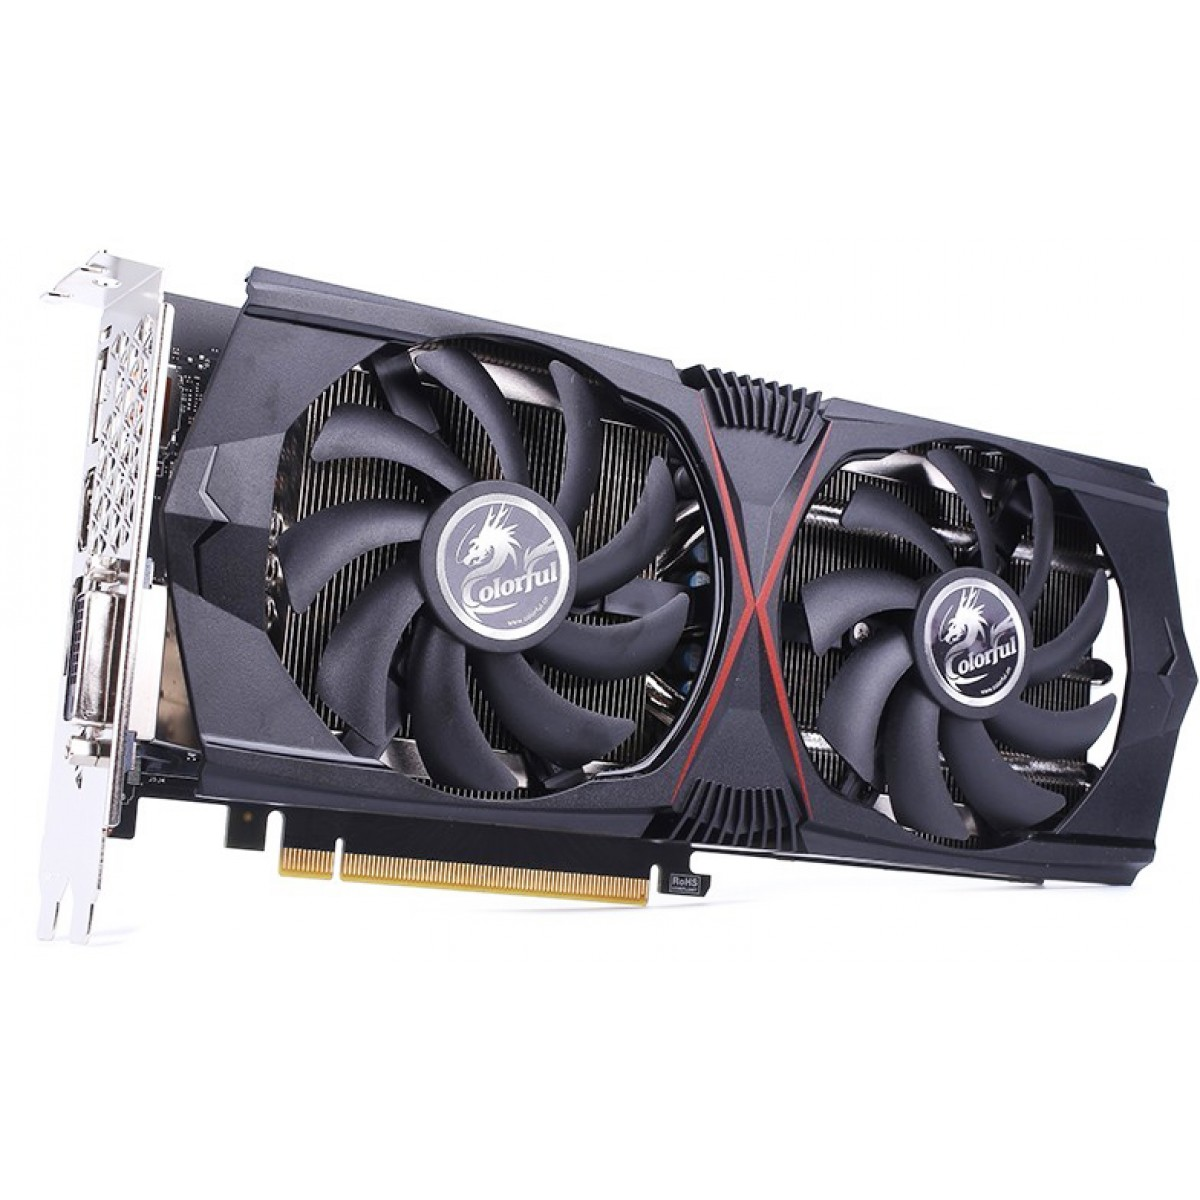 Placa de Vídeo Colorful GeForce RTX 2060 Super Limited-V, 8GB GDDR6, 256Bit